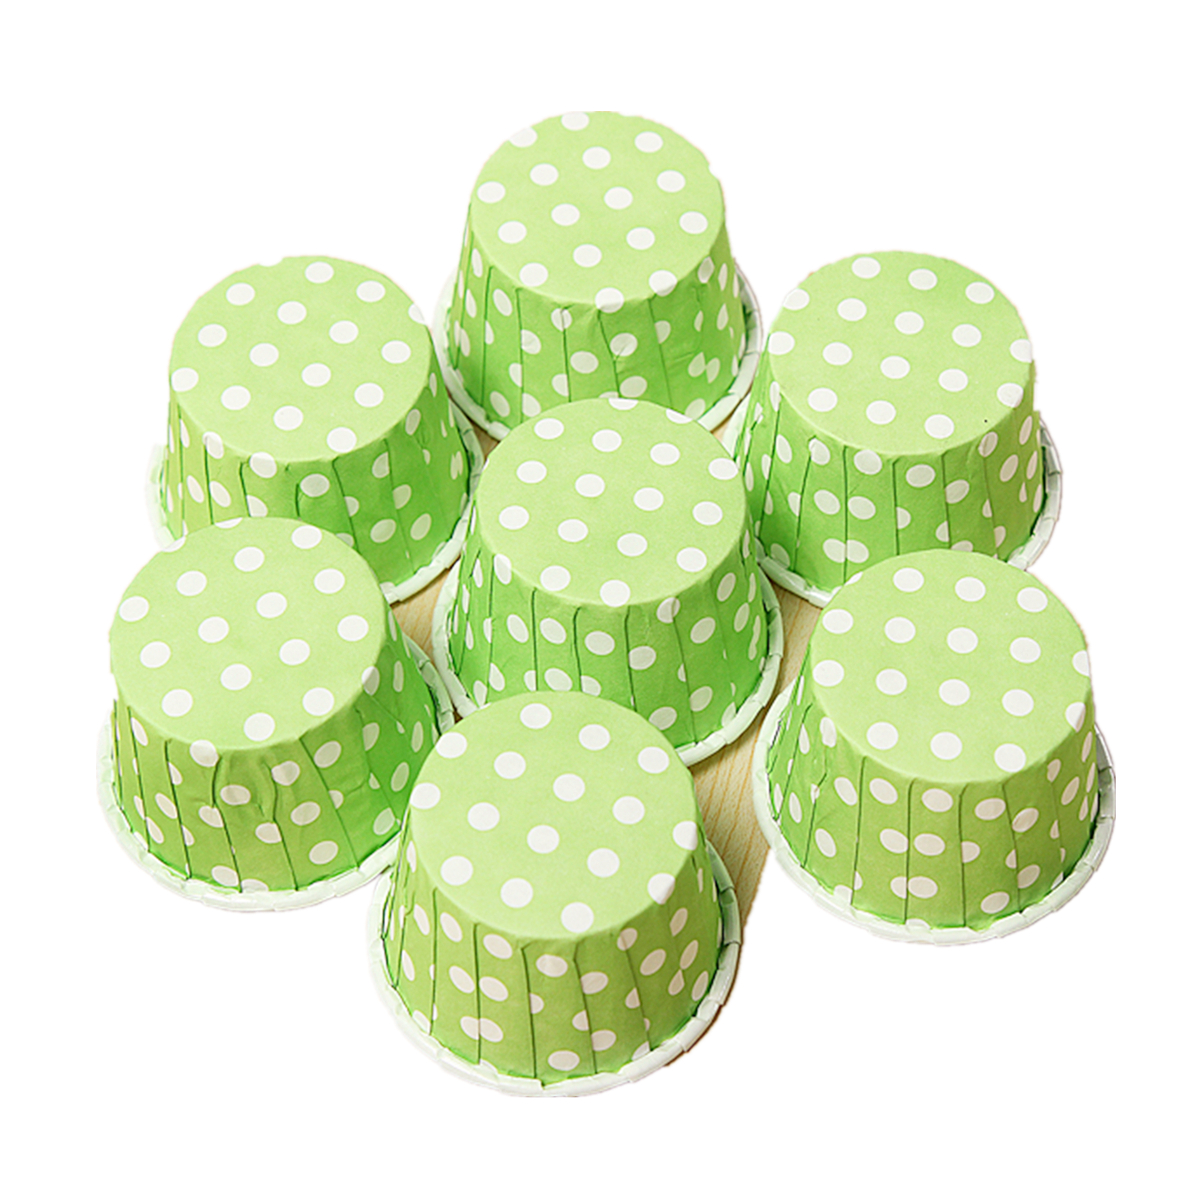 20pcs Cupcake Liner Muffin Candy Nut Snack Greaseproof Dessert Baking Cups 6 Colors,red color